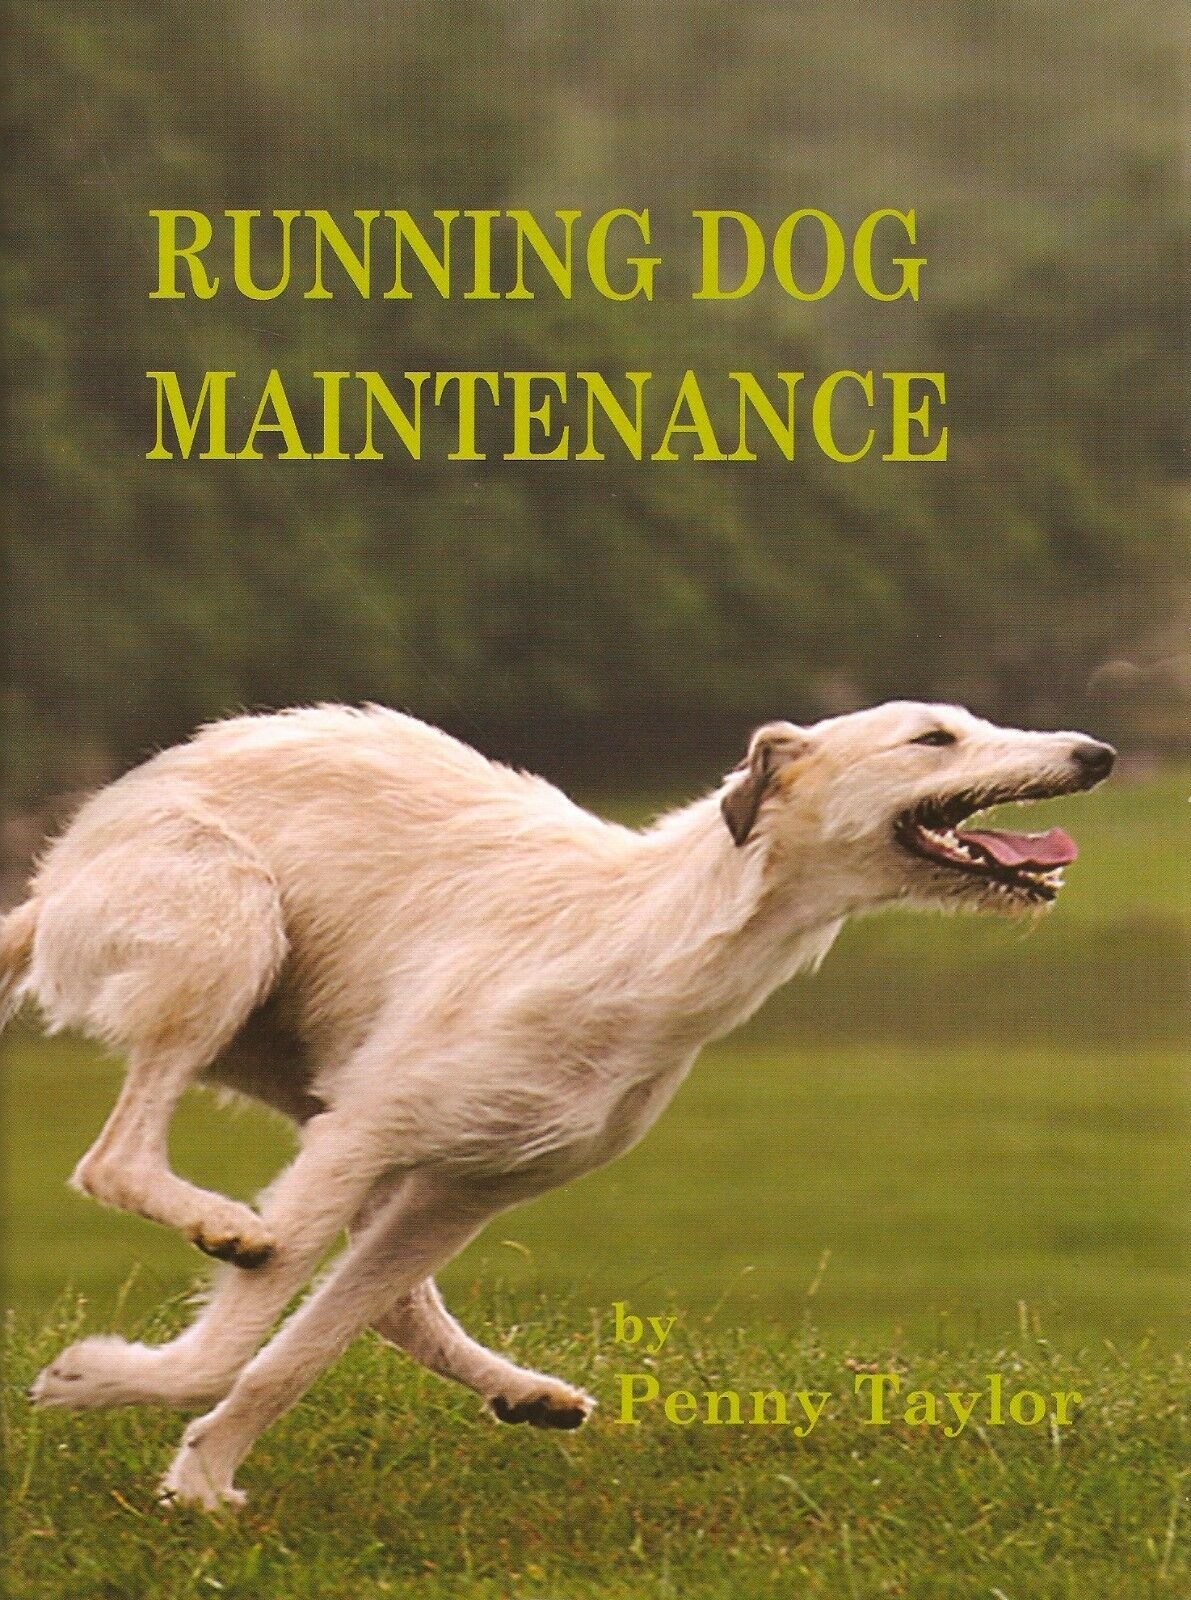 Running dog maintenance by Penny Taylor